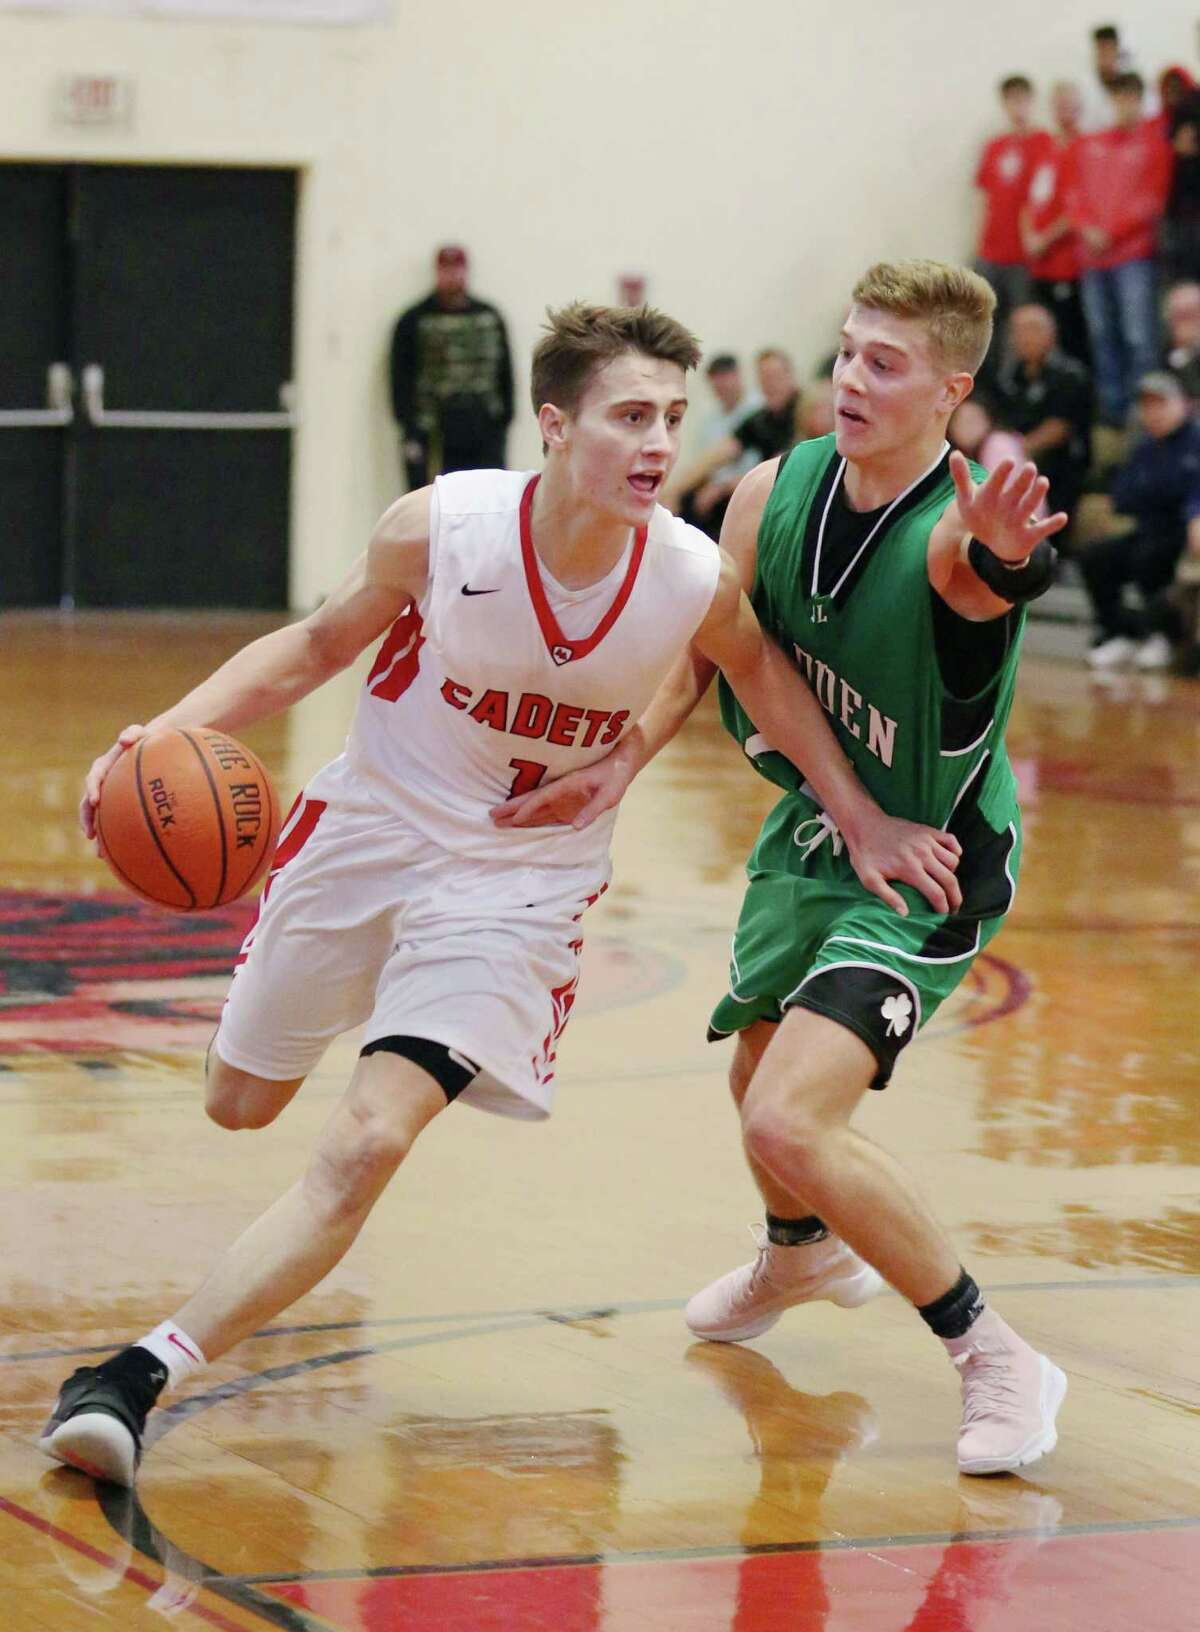 Albany Academy's August Mahoney dribbles the ball down the court during a game against Bishop Ludden Saturday Dec. 15, 2018 at Albany Academy.